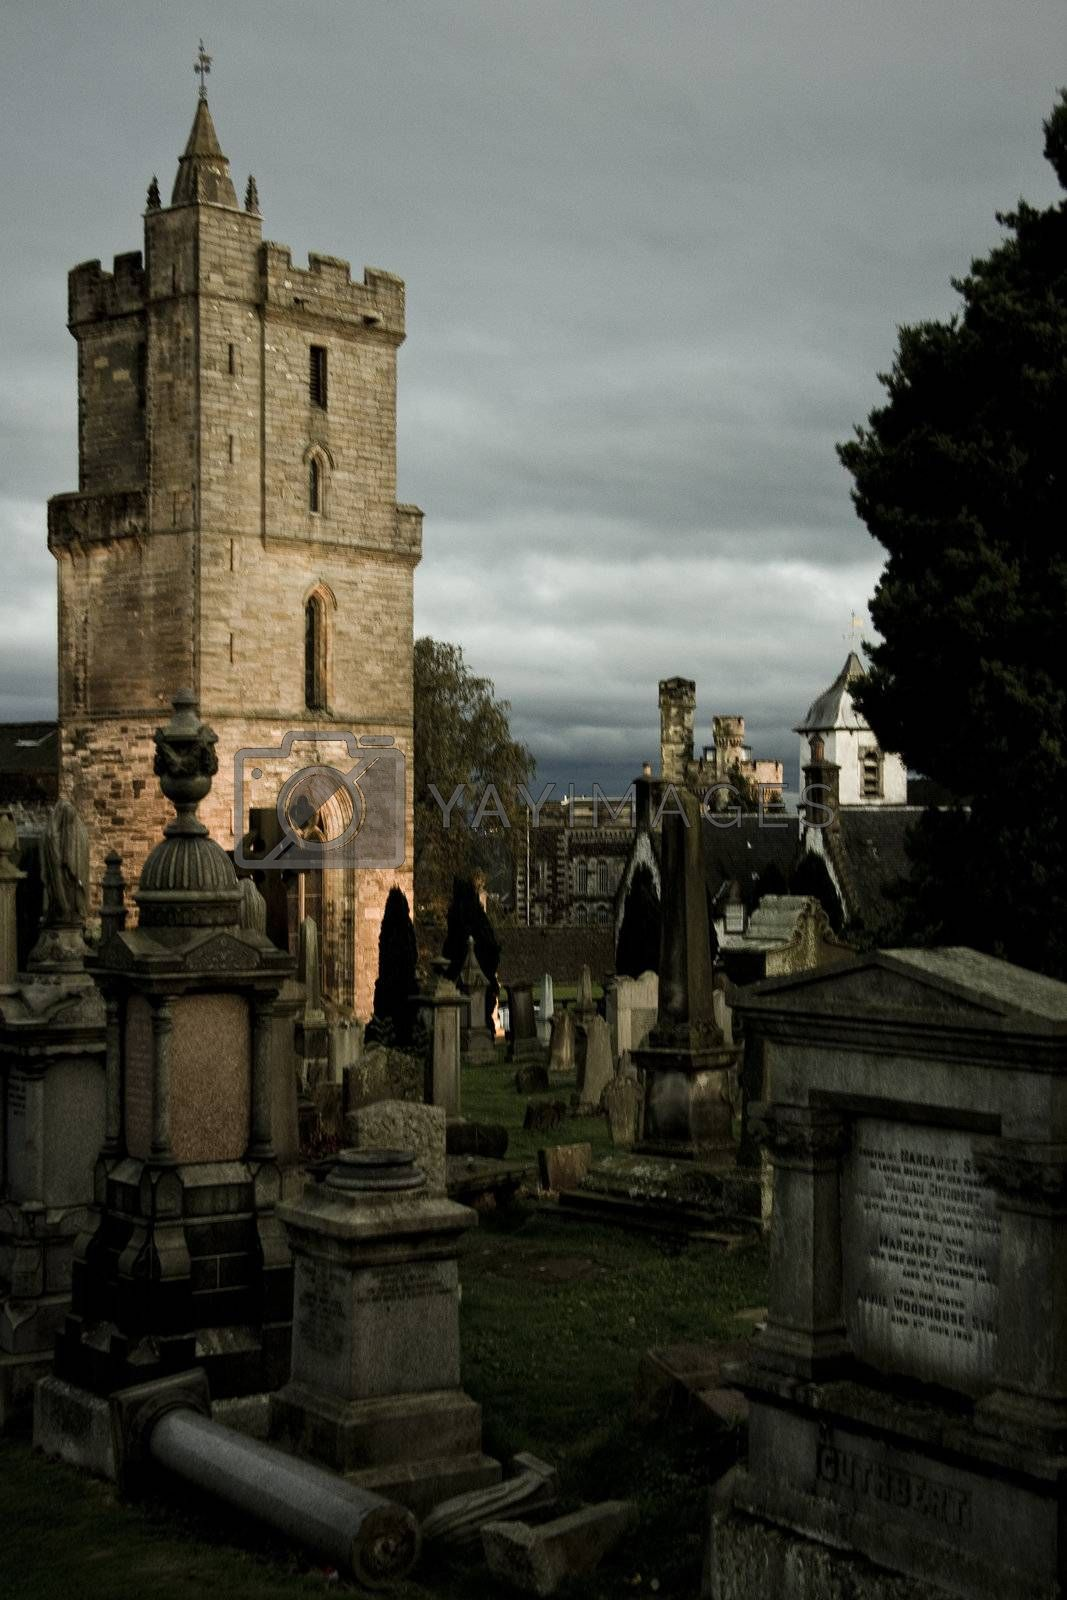 mystic cemetery in stirling with illuminated tower in background